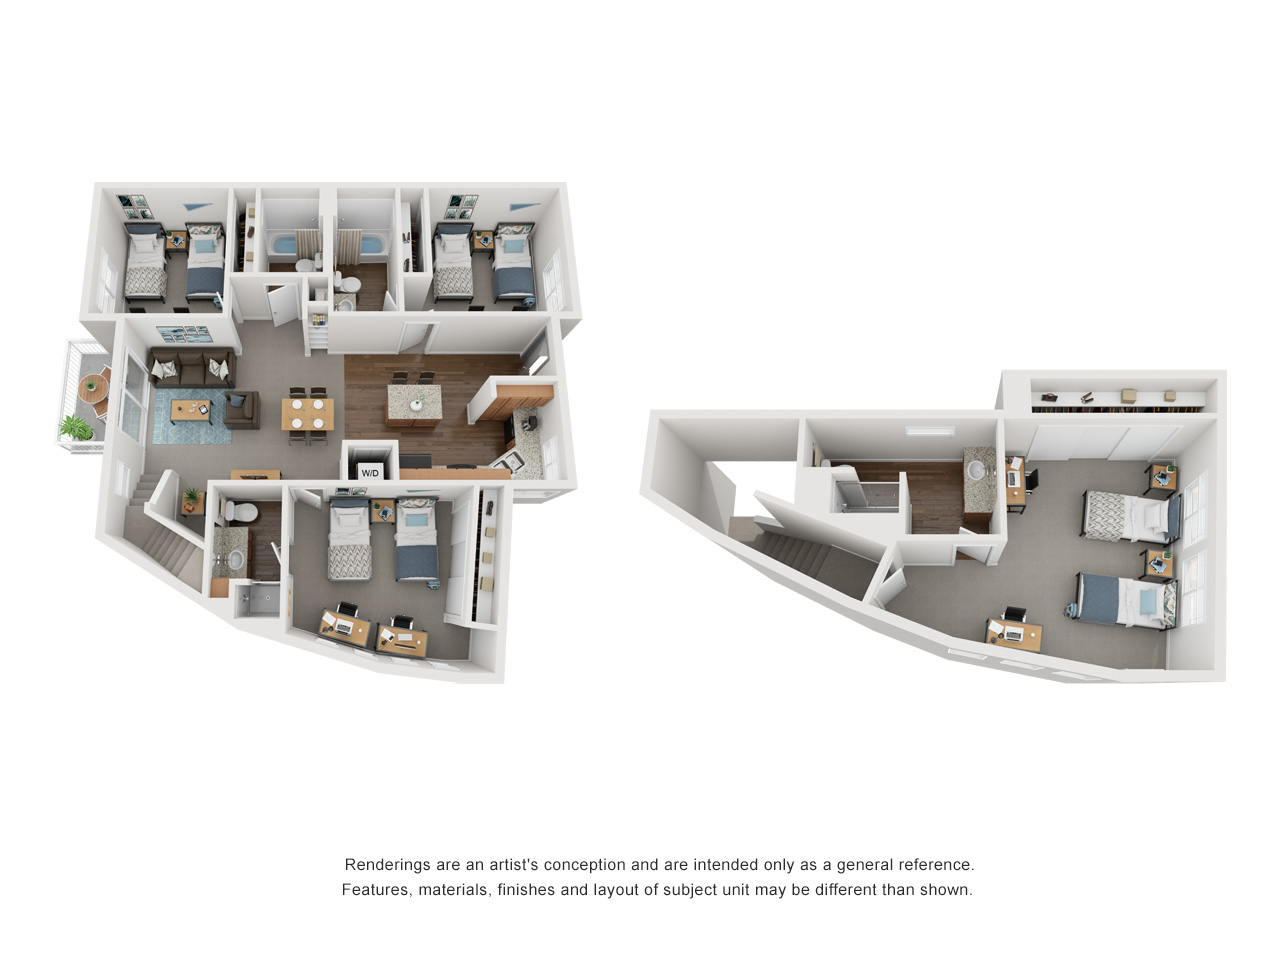 Artists conceptual rendering of a two story 4 bedrooms (three on 1st floor, one on 2nd floor), 4 bathrooms, depicting 2 beds per room, open layout kitchen and fenced patio..